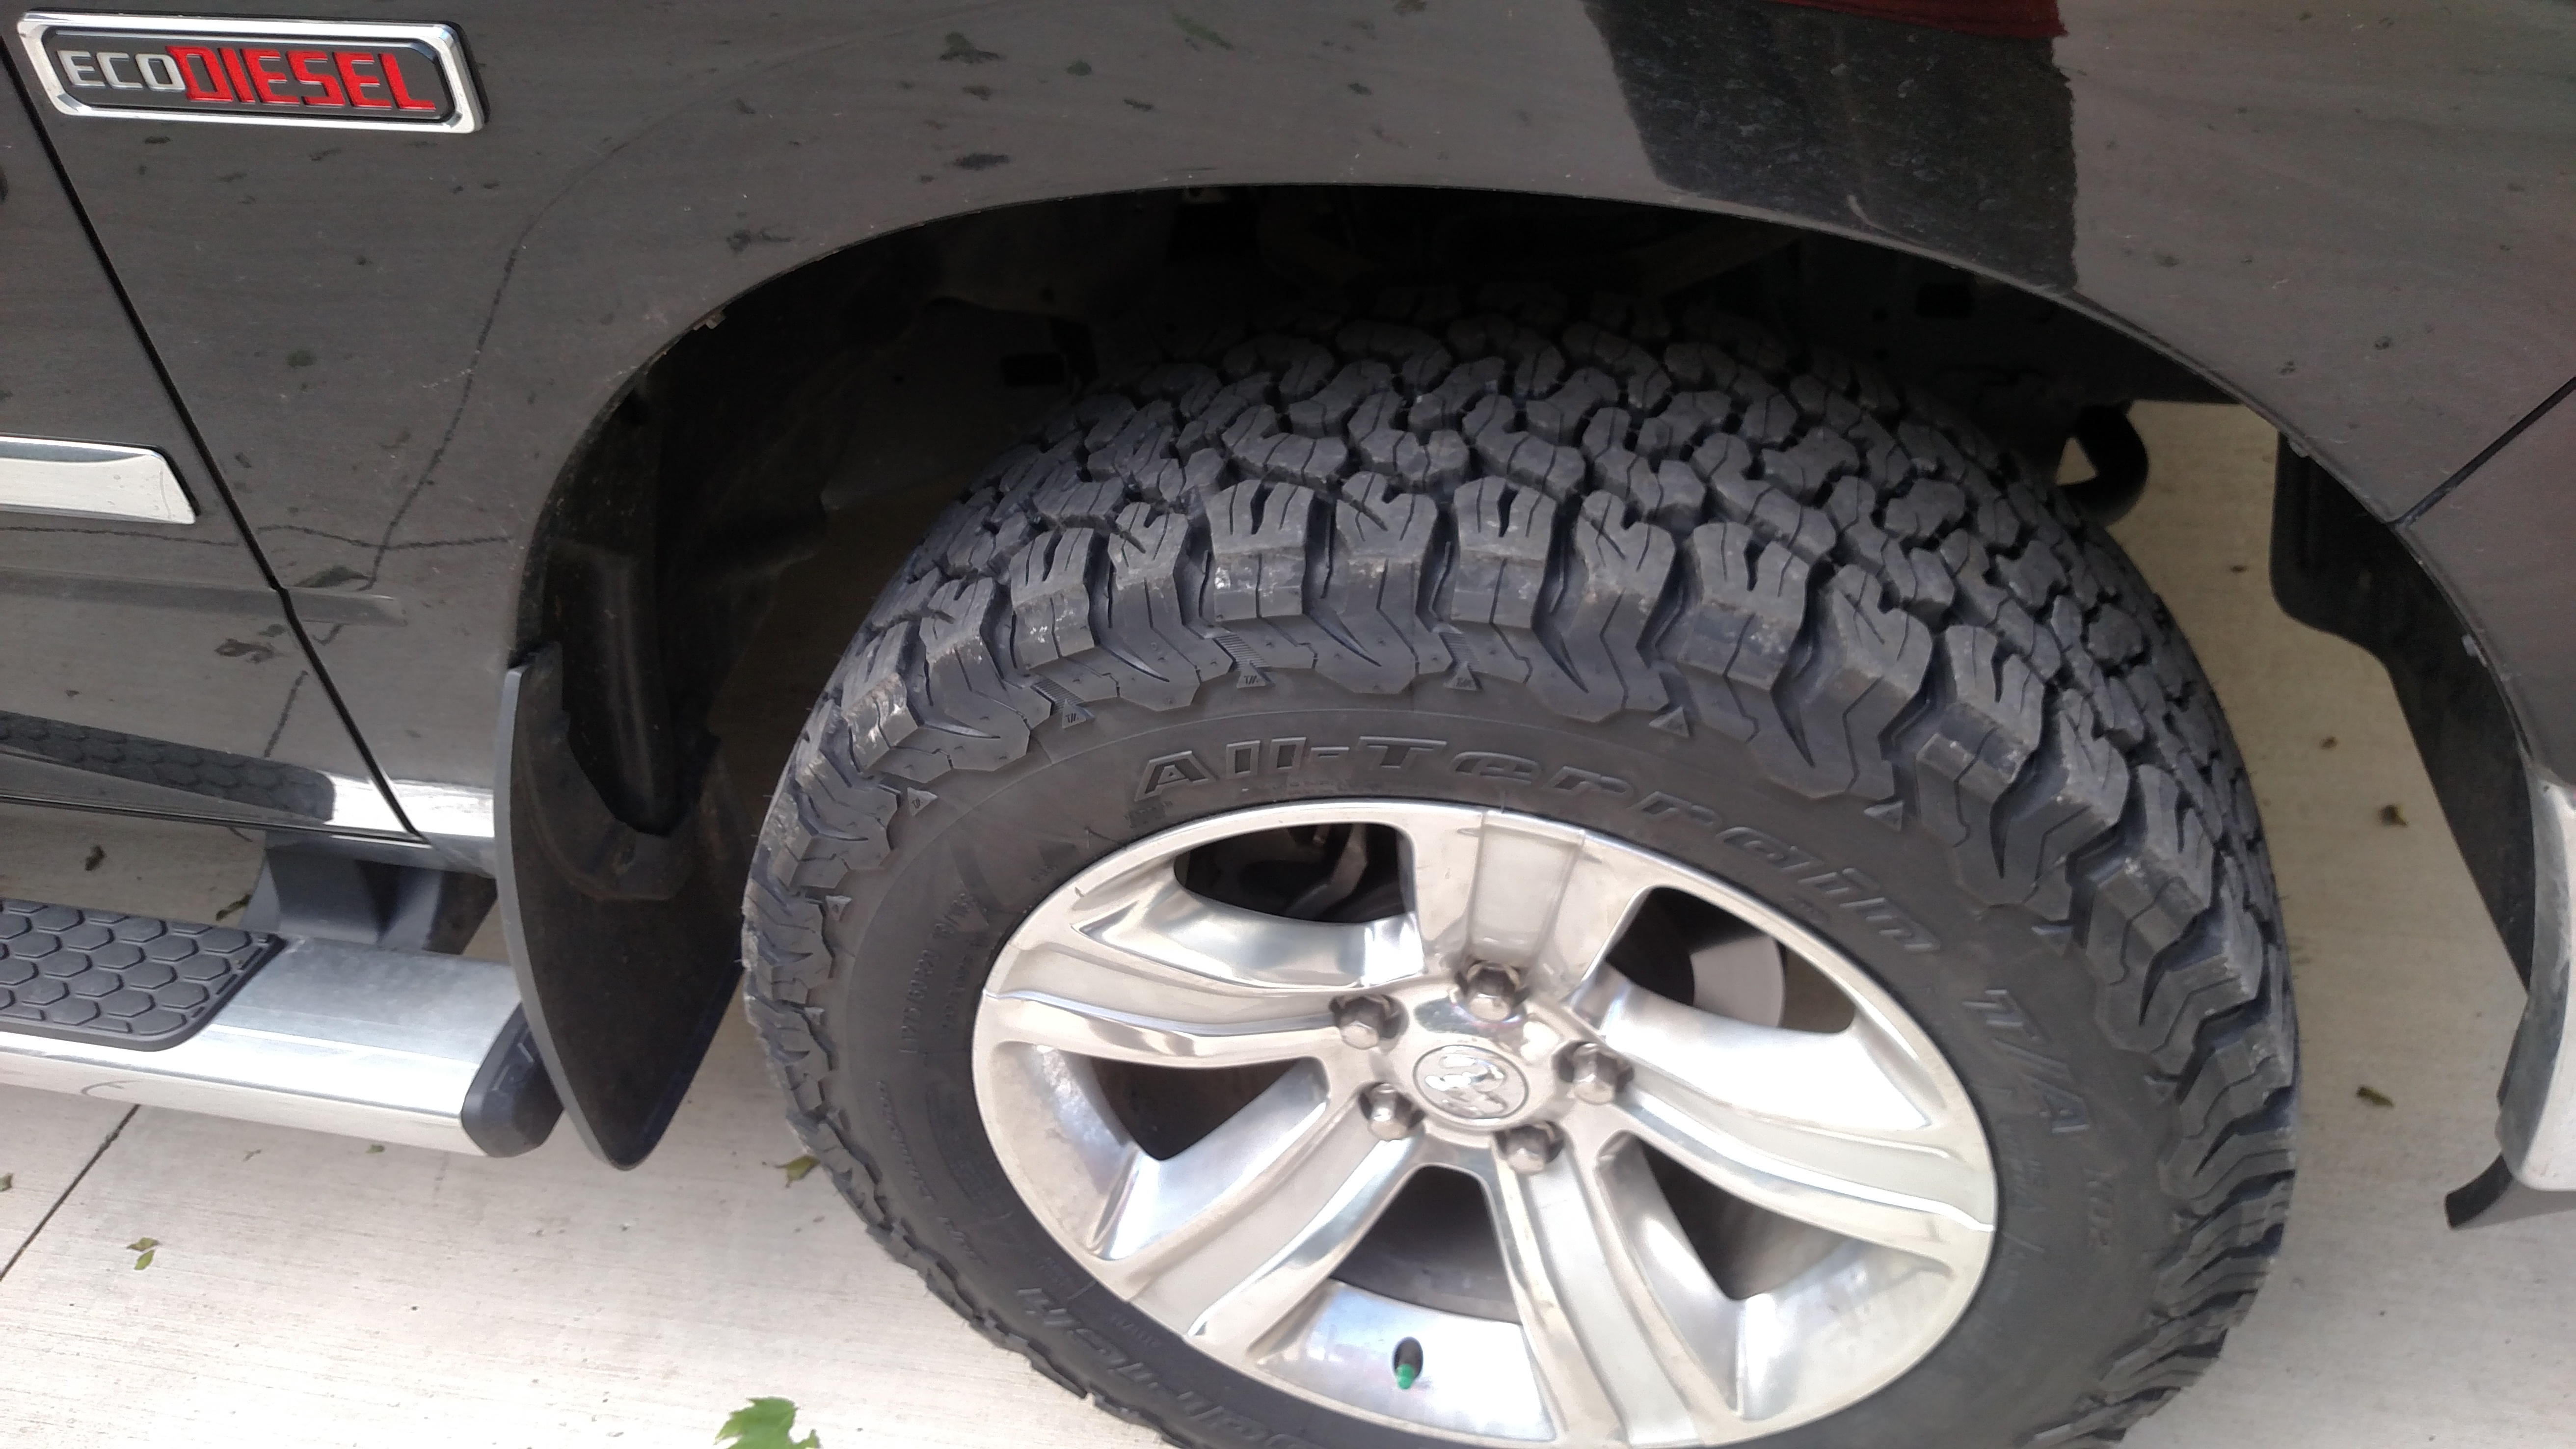 Hankook Truck Tires >> New 275/60r20 Bf Goodrich A/T Ko2 tires installed